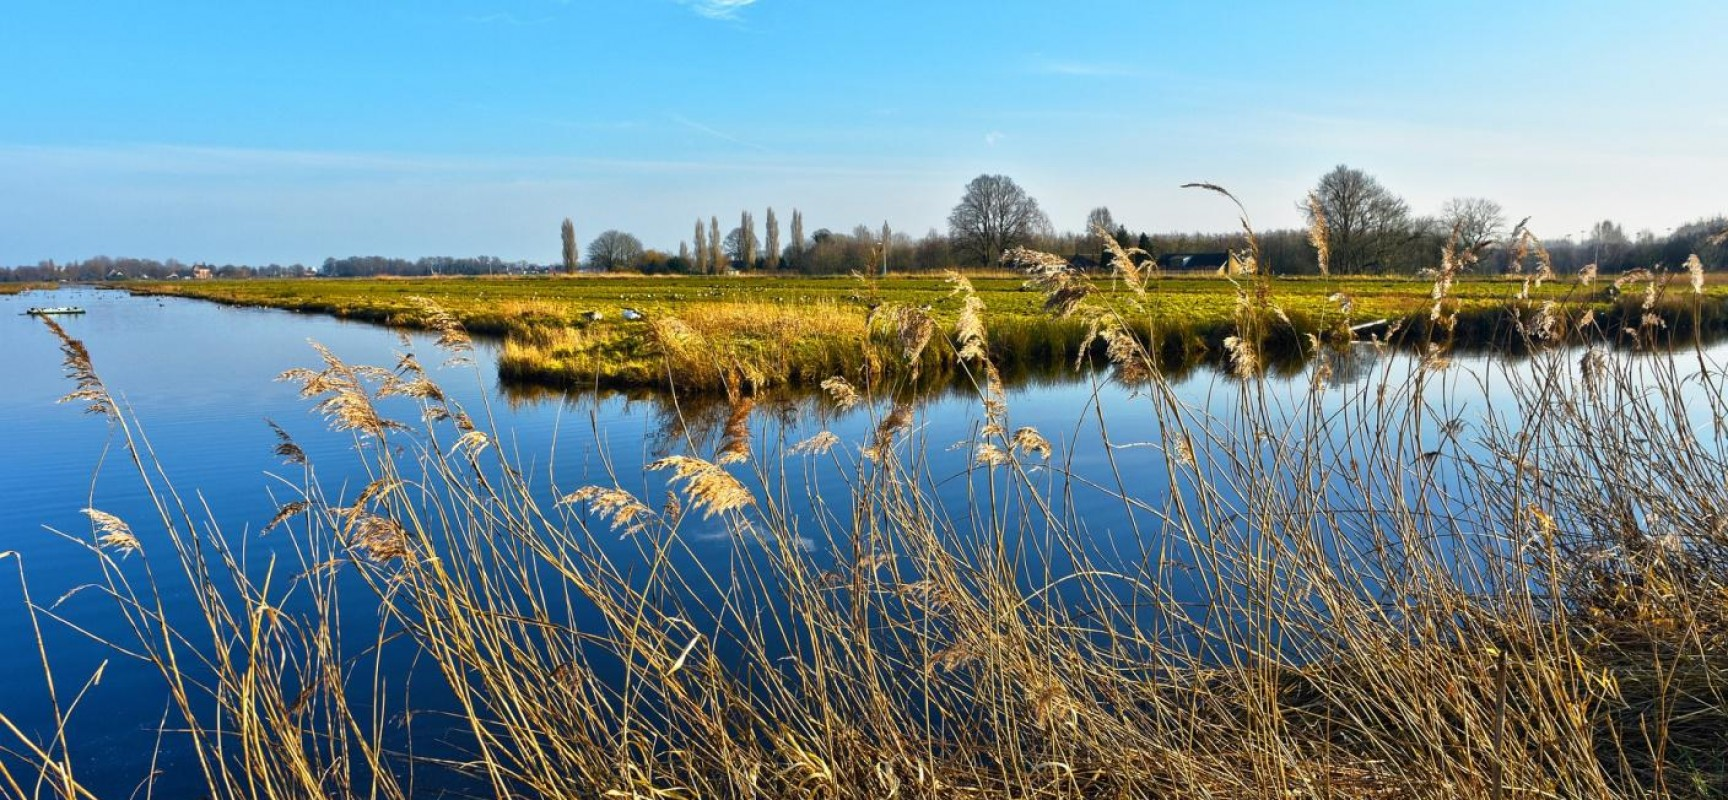 Compulsory Purchase Procedures 101: What You Need to Know